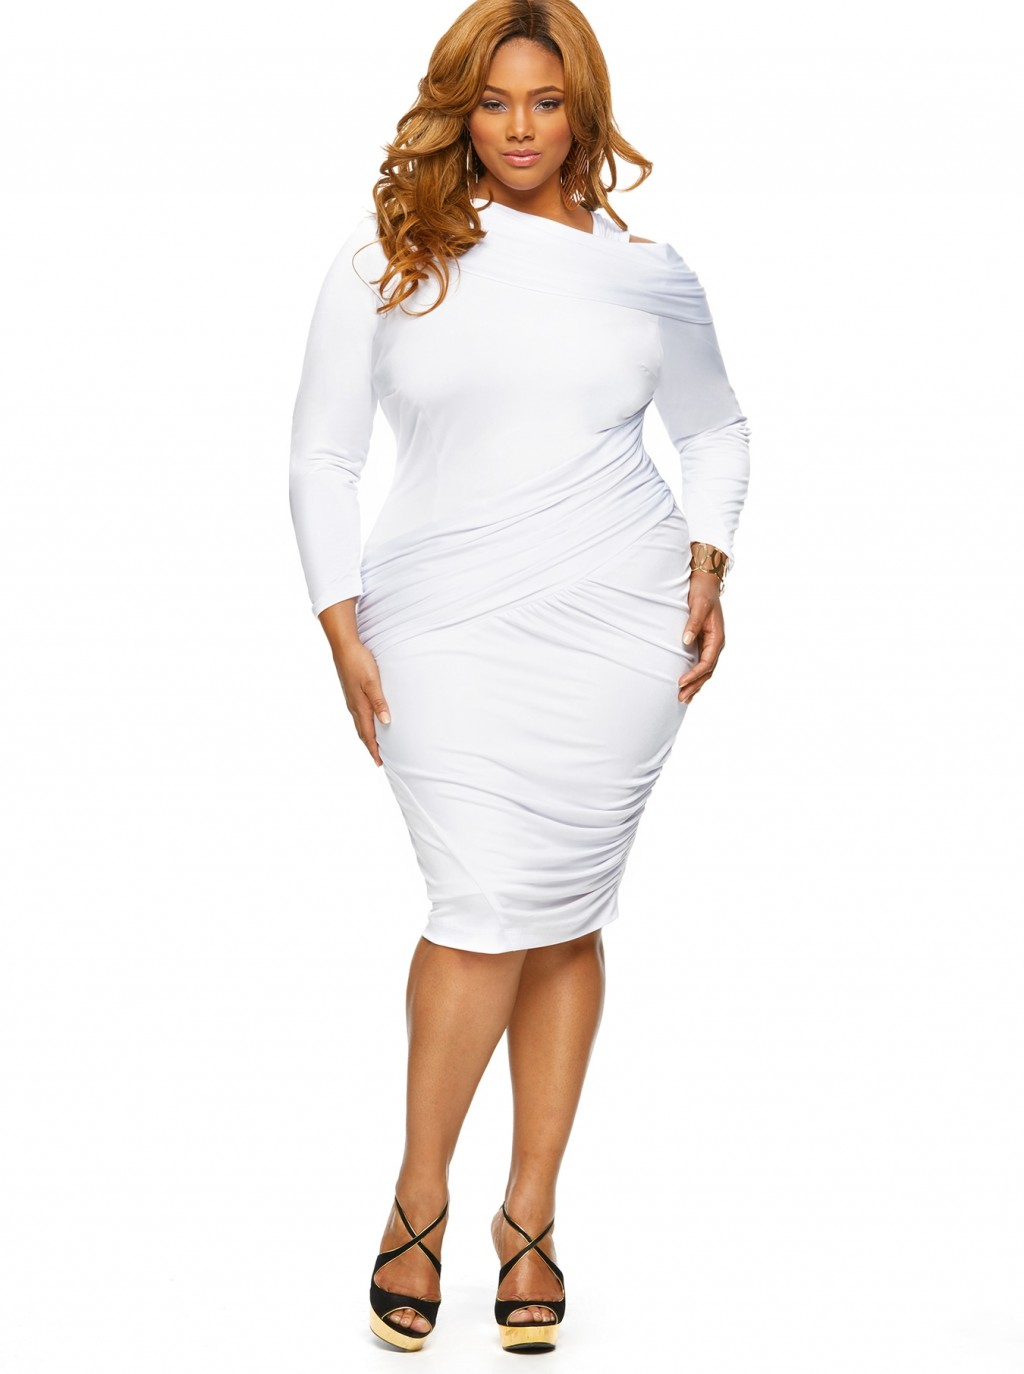 j lo plus size attire